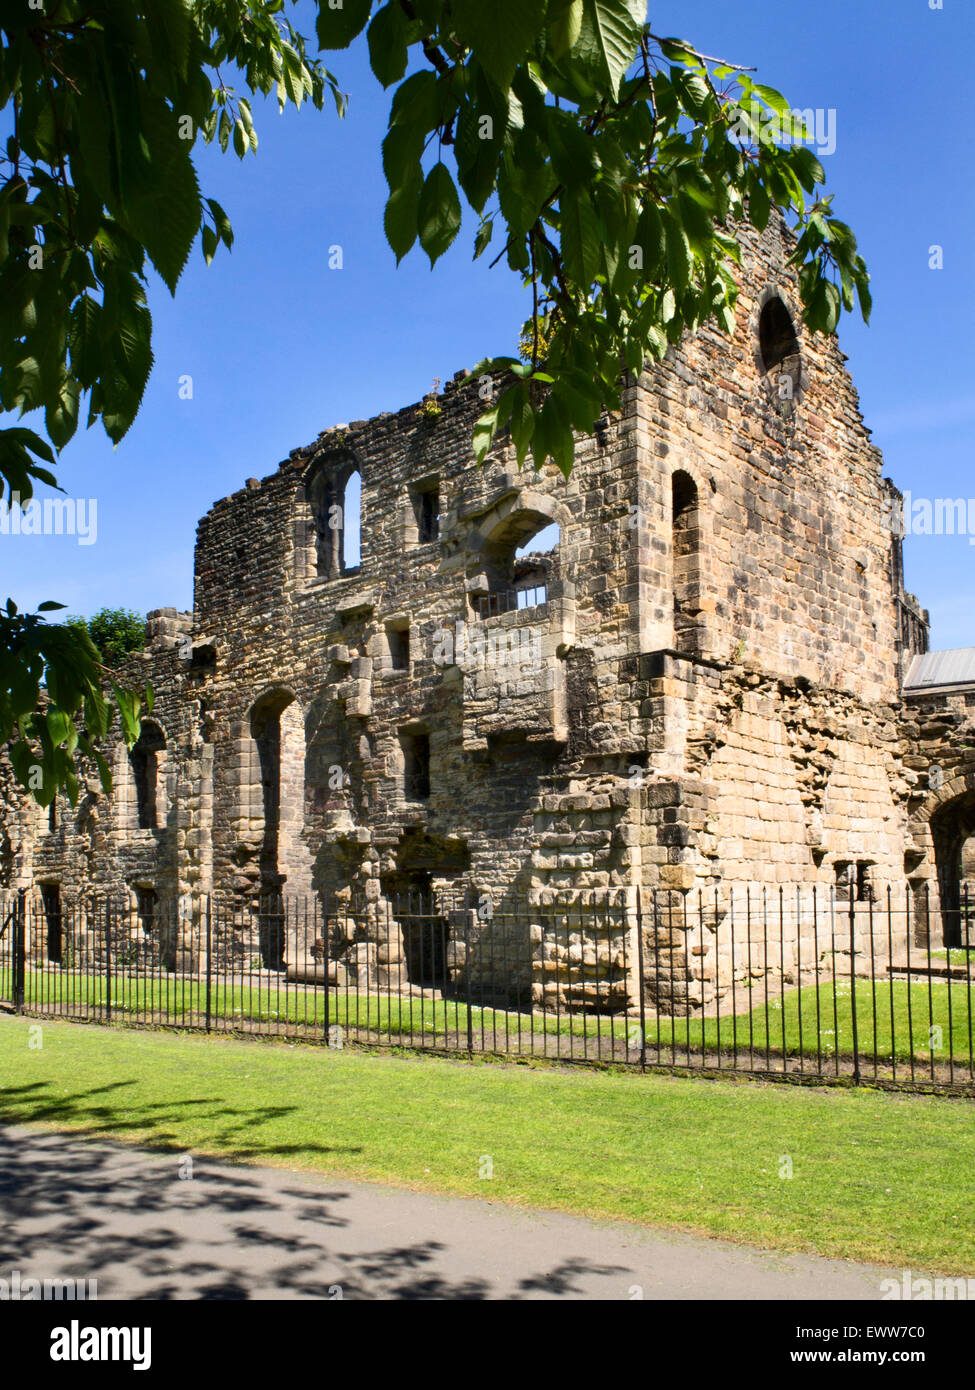 The Abbots Lodging at Kirkstall Abbey Kirkstall Leeds West Yorkshire England - Stock Image